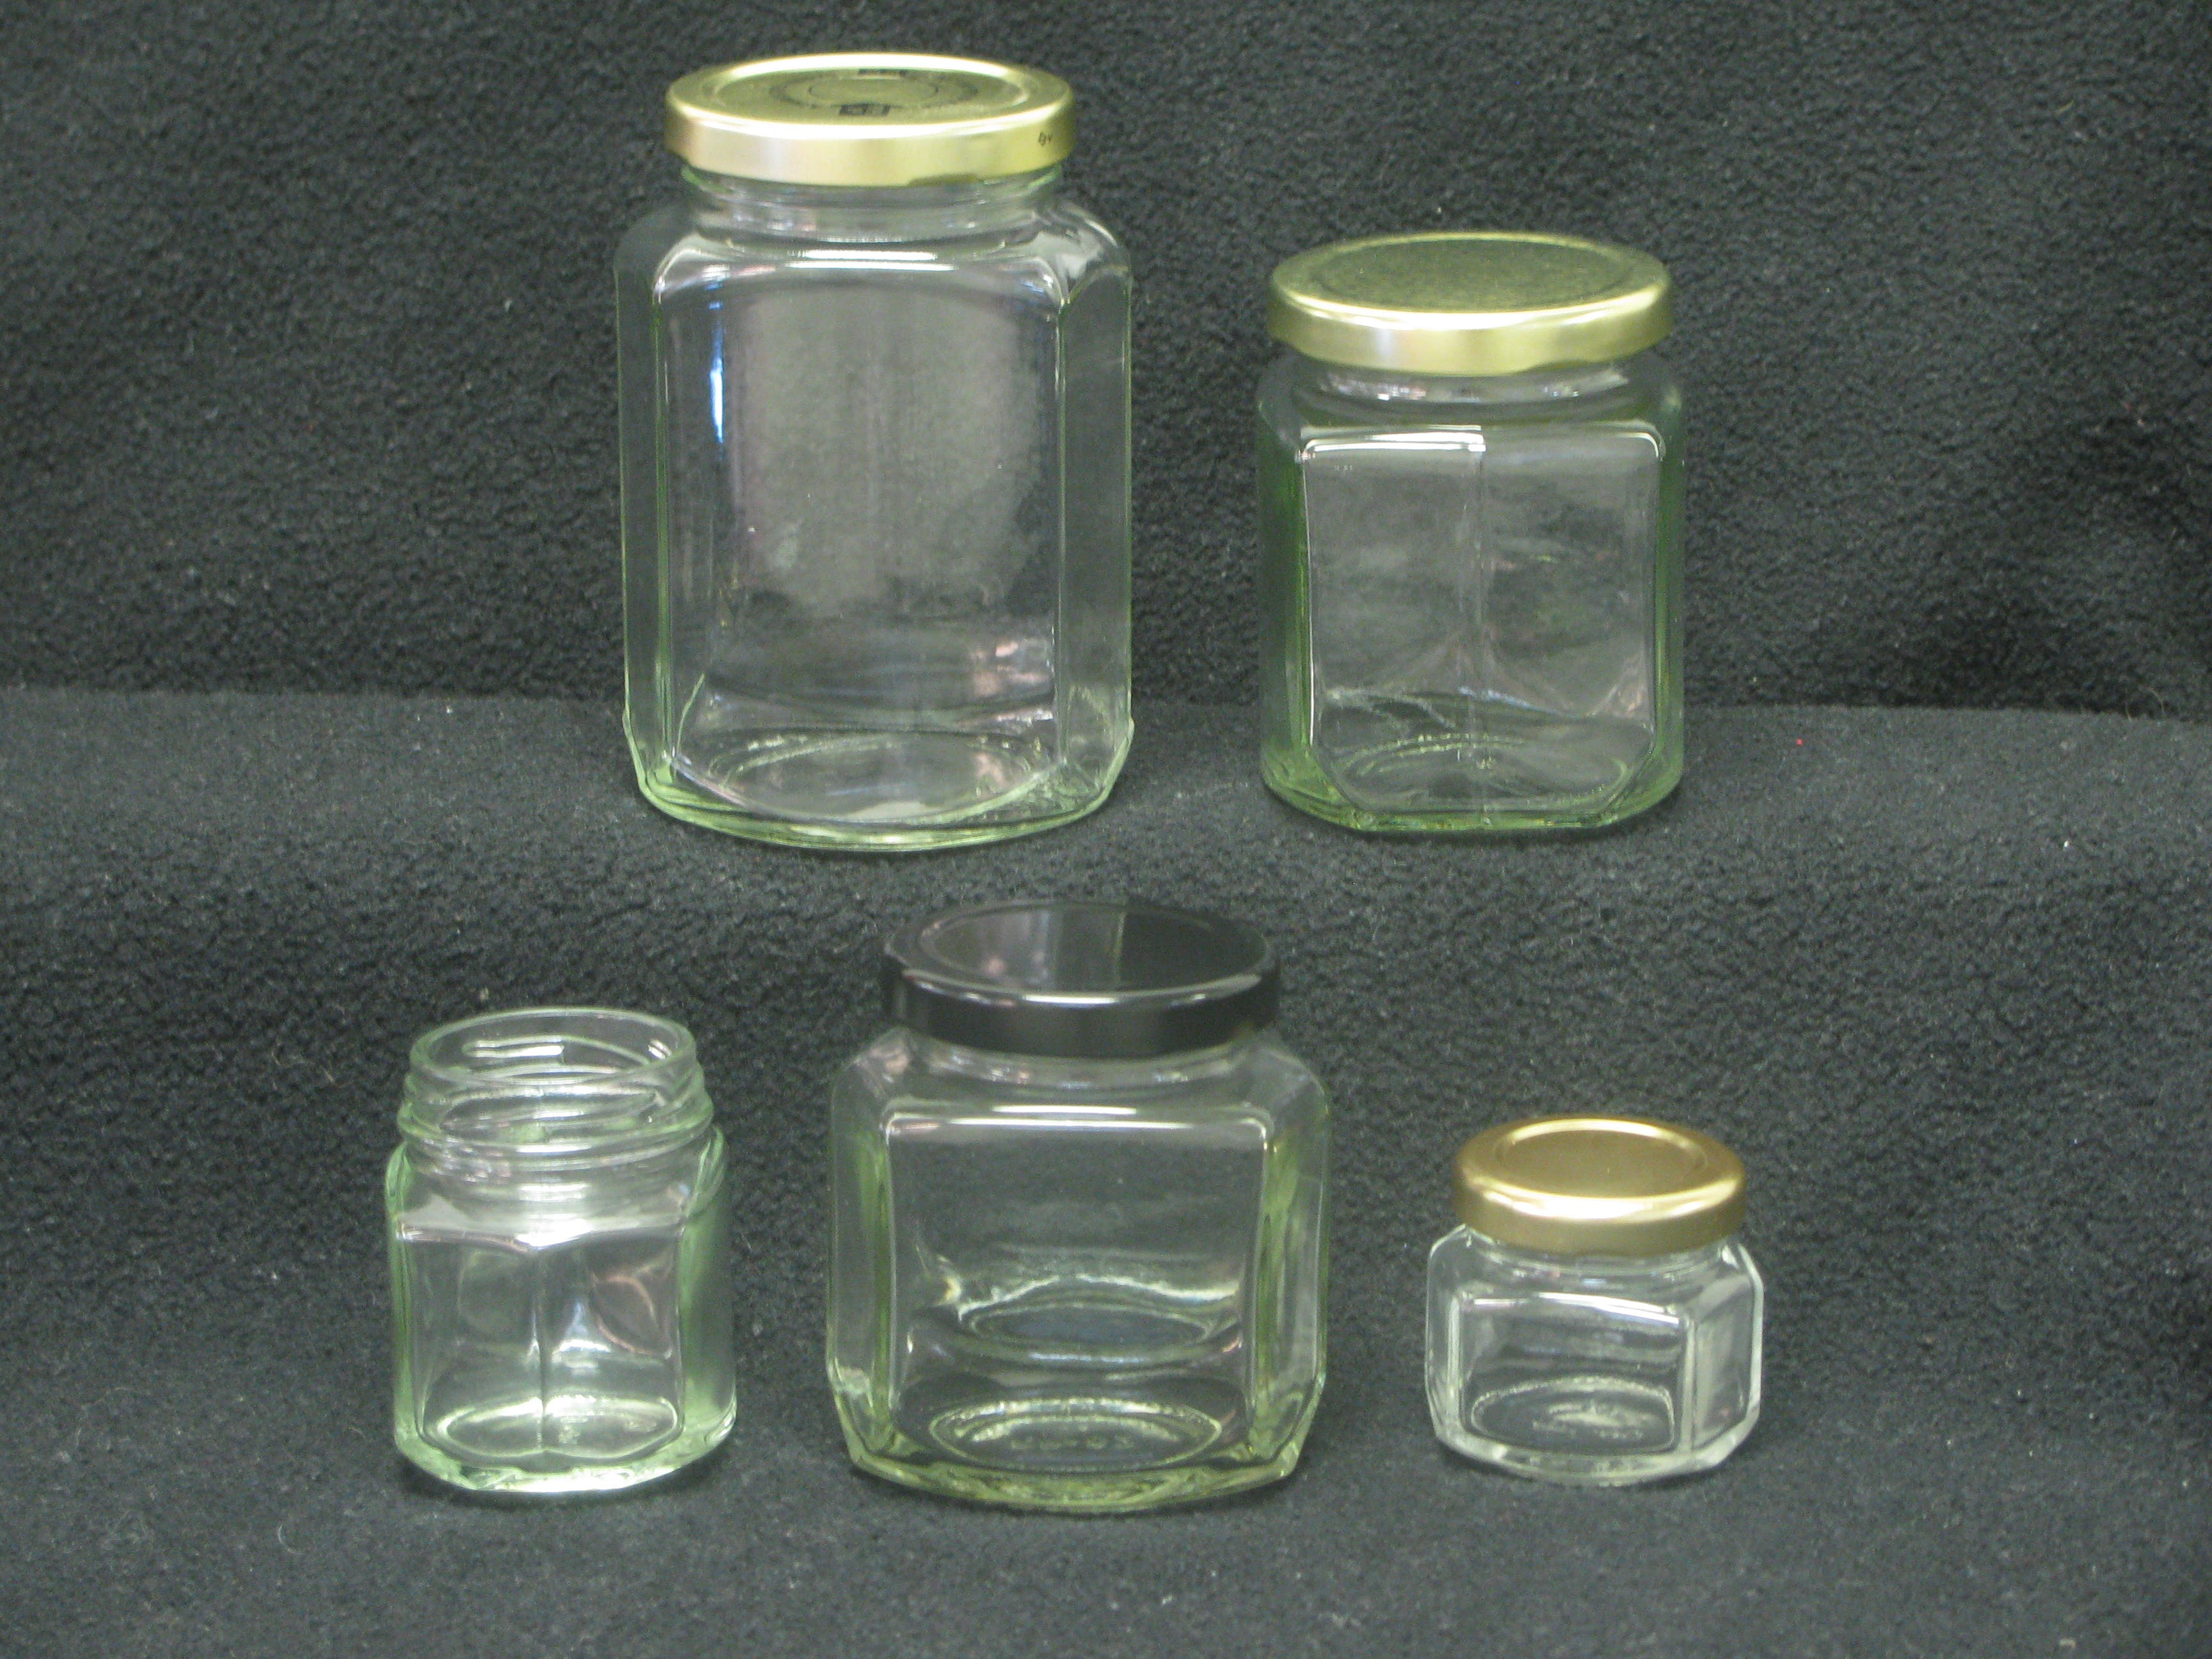 Oval Hex Jars Glass Jar sold by Richards Packaging, Inc